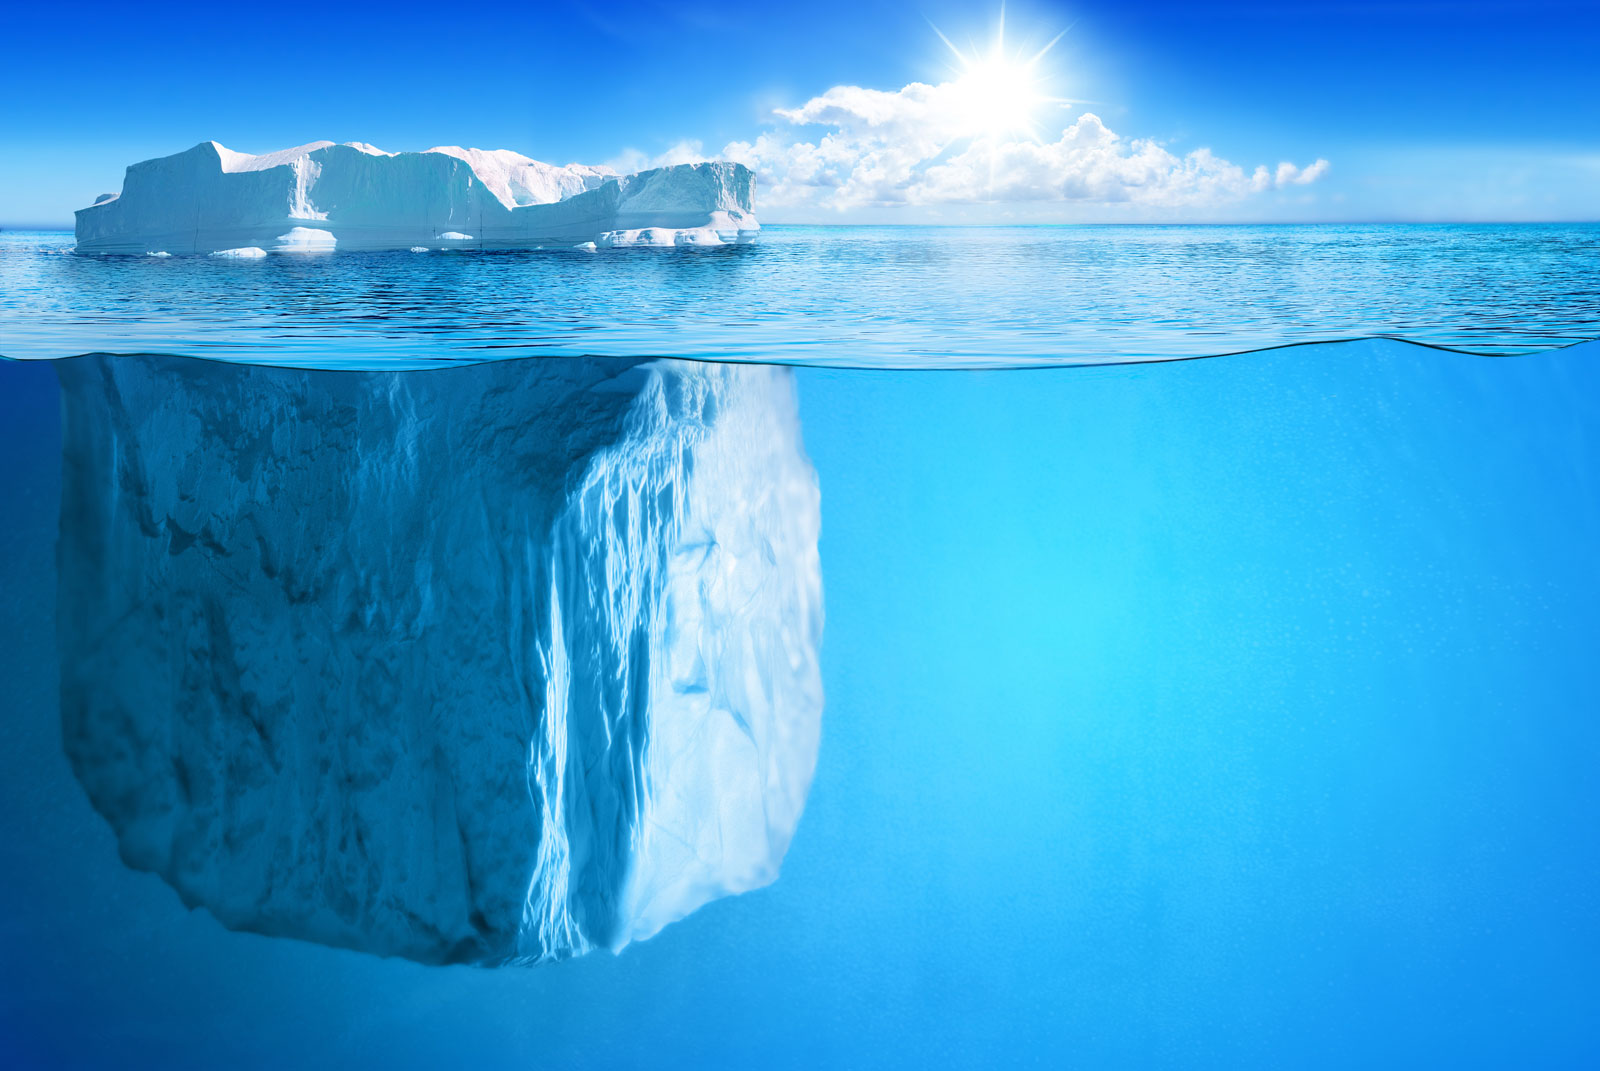 having scf in place is only the tip of the iceberg supplier having supply chain finance scf in place is only the tip of the iceberg